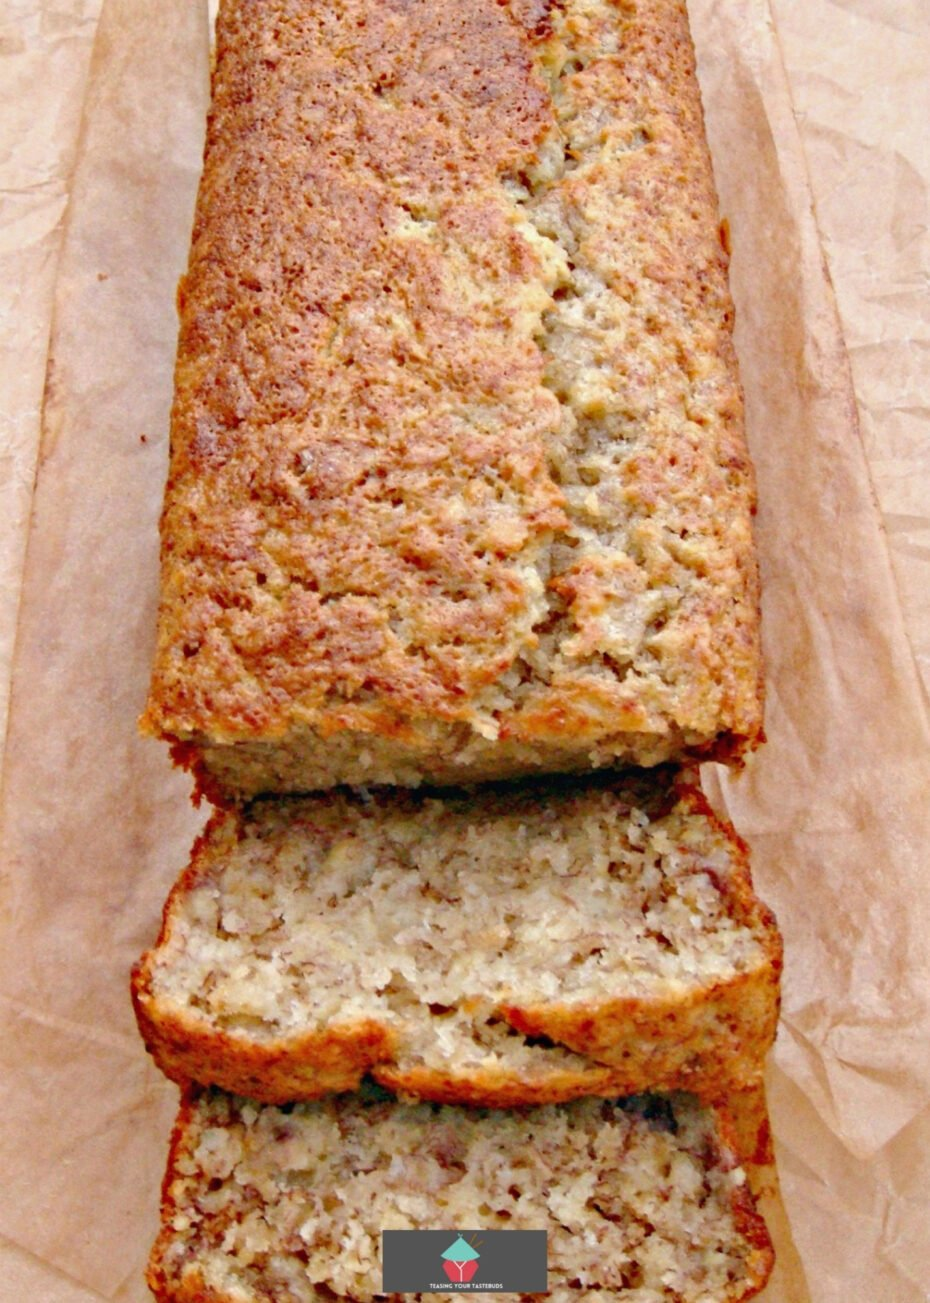 Sour Cream Banana Bread. A soft and delicious cake using sour cream and bananas makes for a lovely easy recipe. Instructions for mini loaves or regular loaf pan!